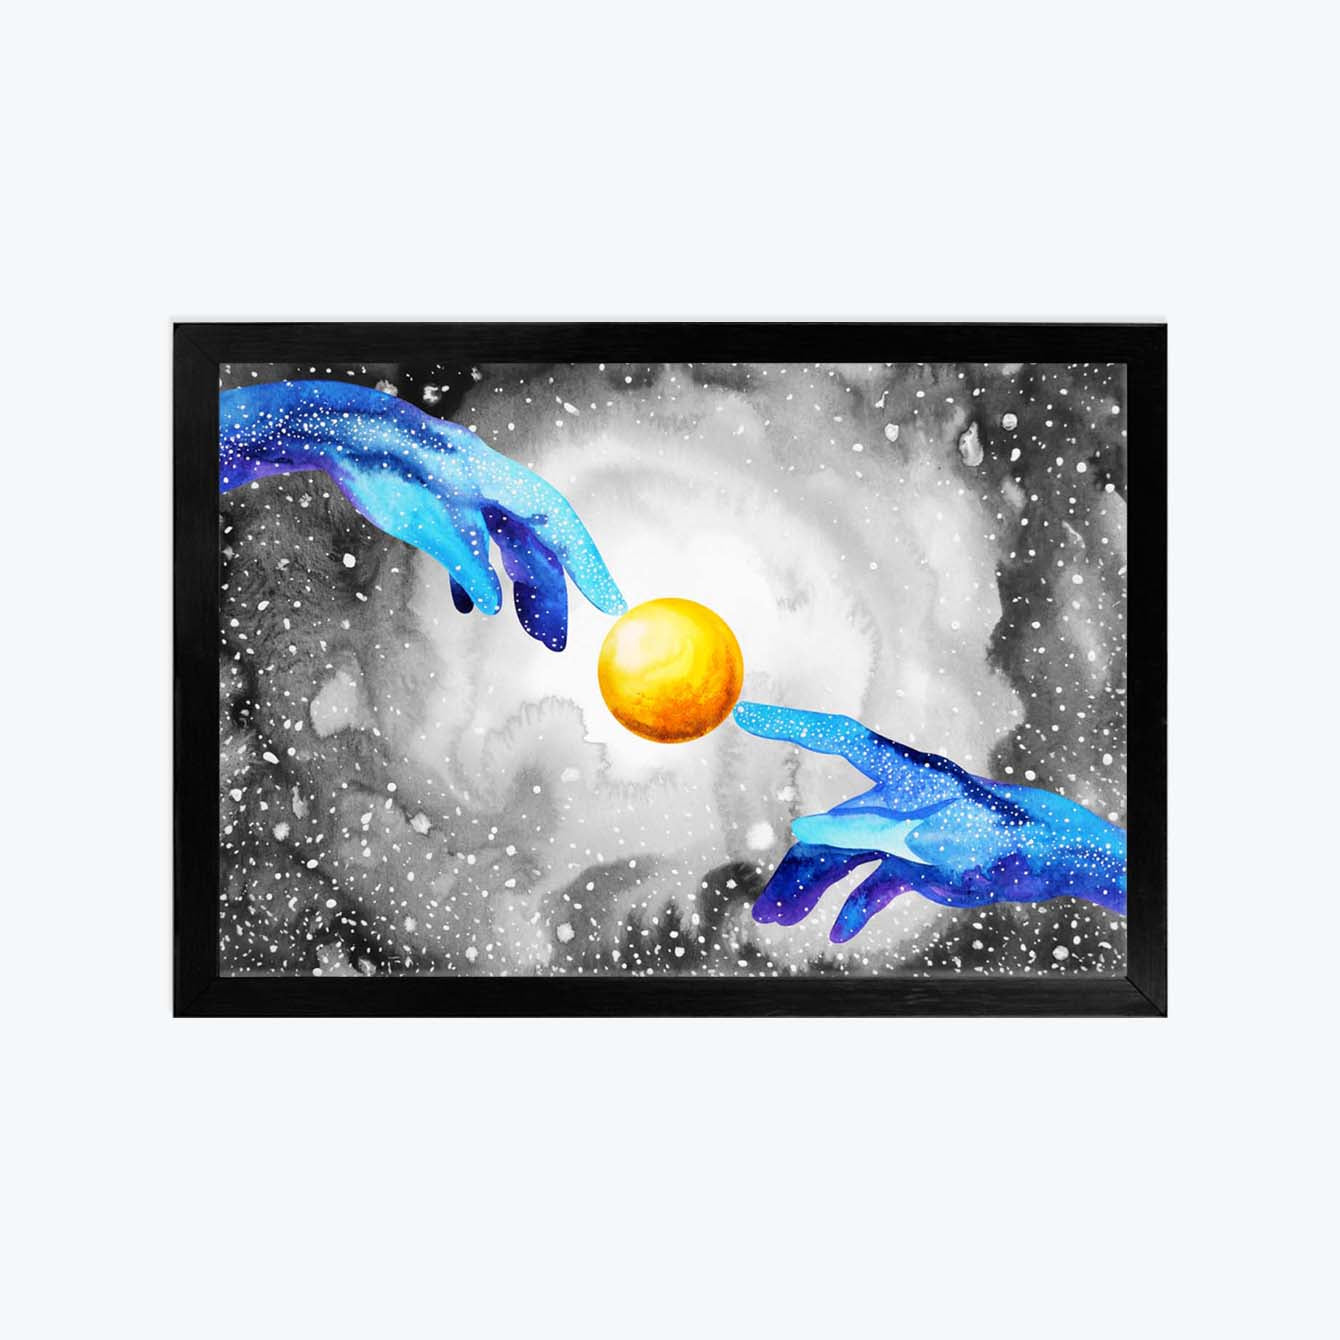 Hands Of God Connect To Another World Spiritual Glass Framed Posters & Artprints